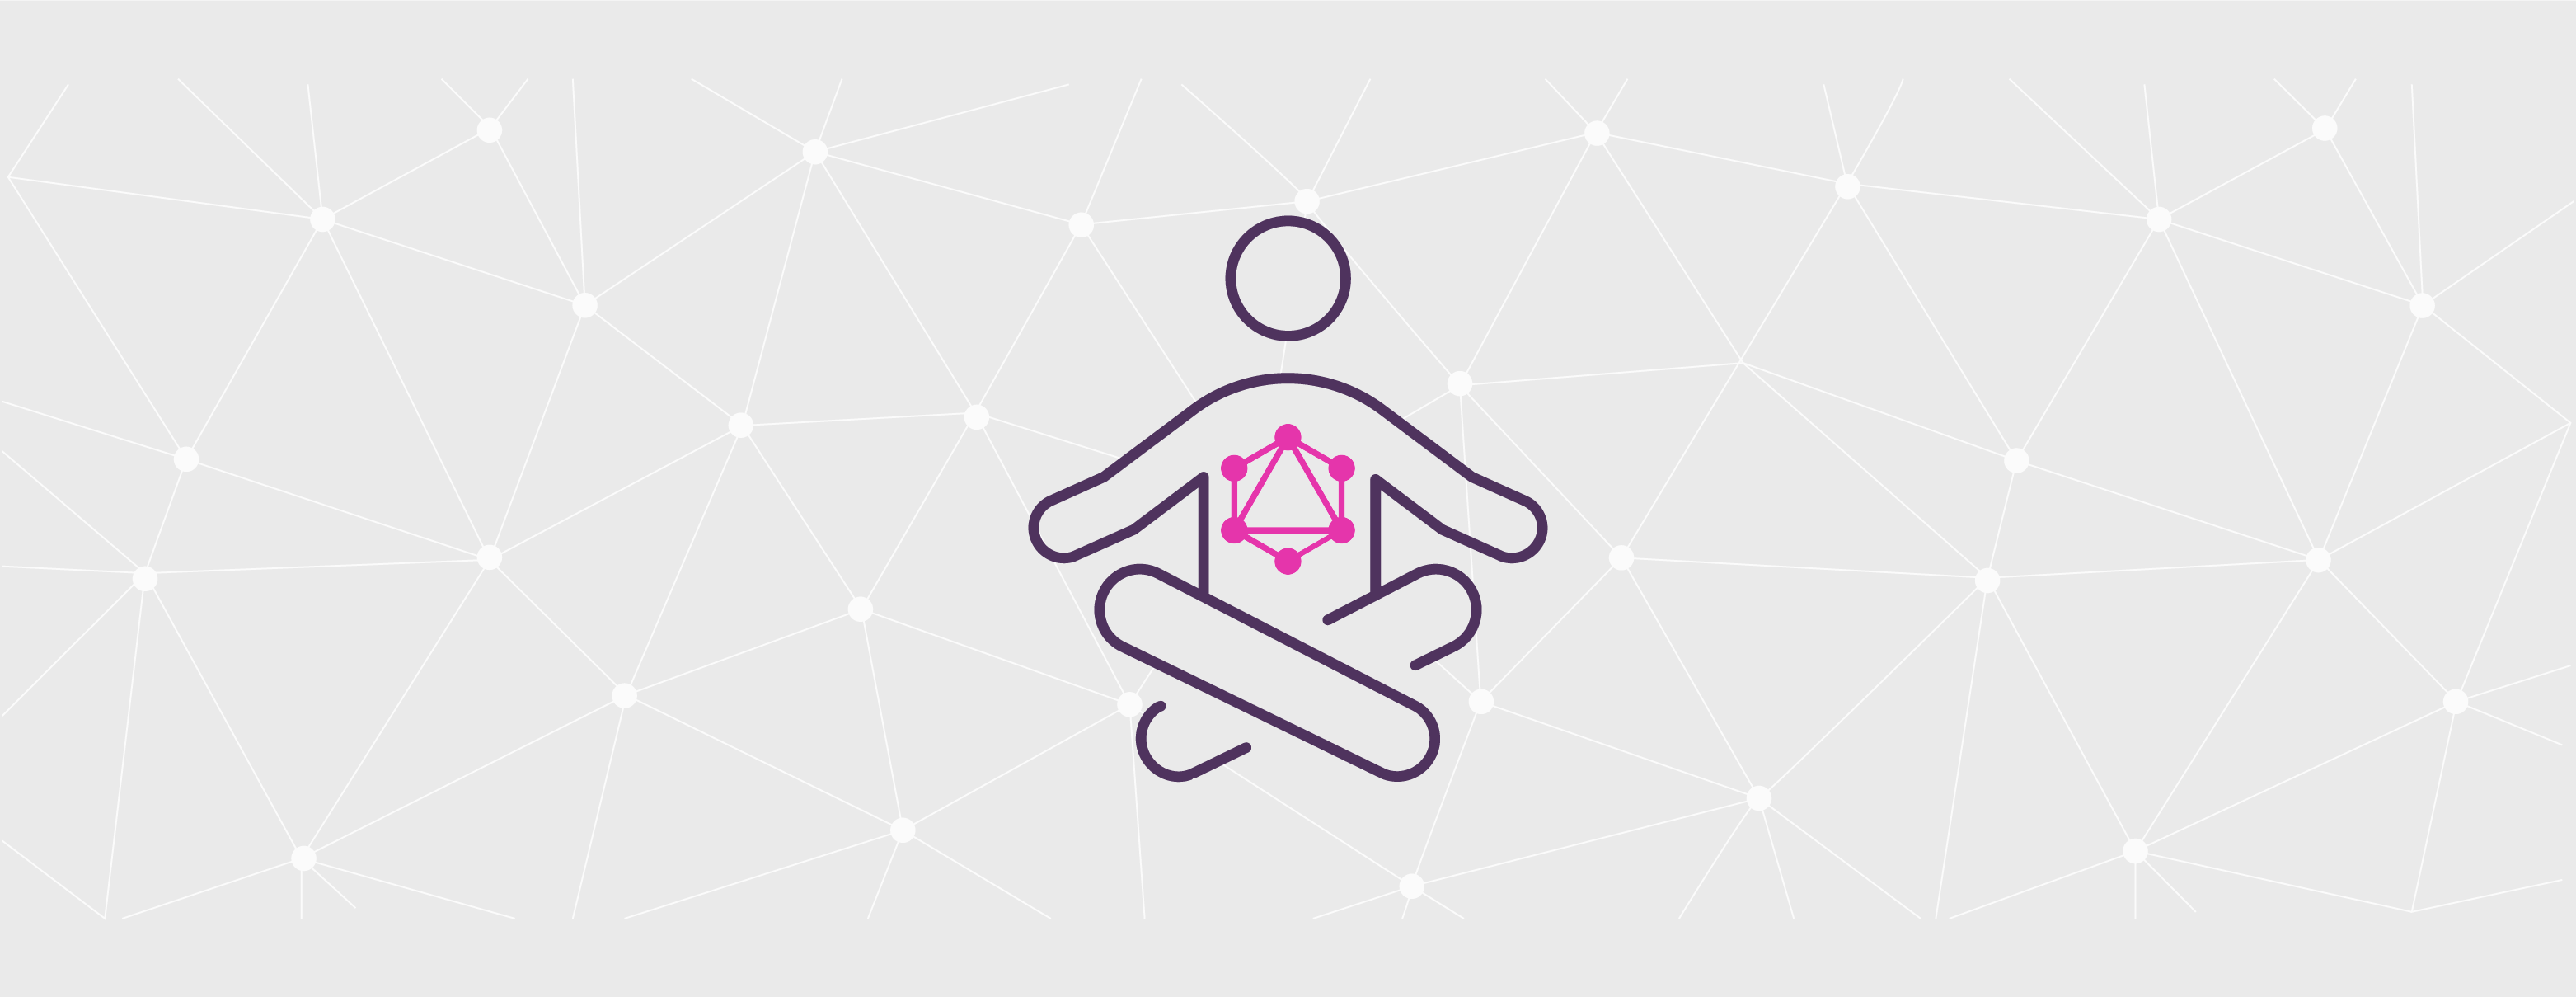 GraphQL Yoga: Wrapped REST Pose | Rangle io